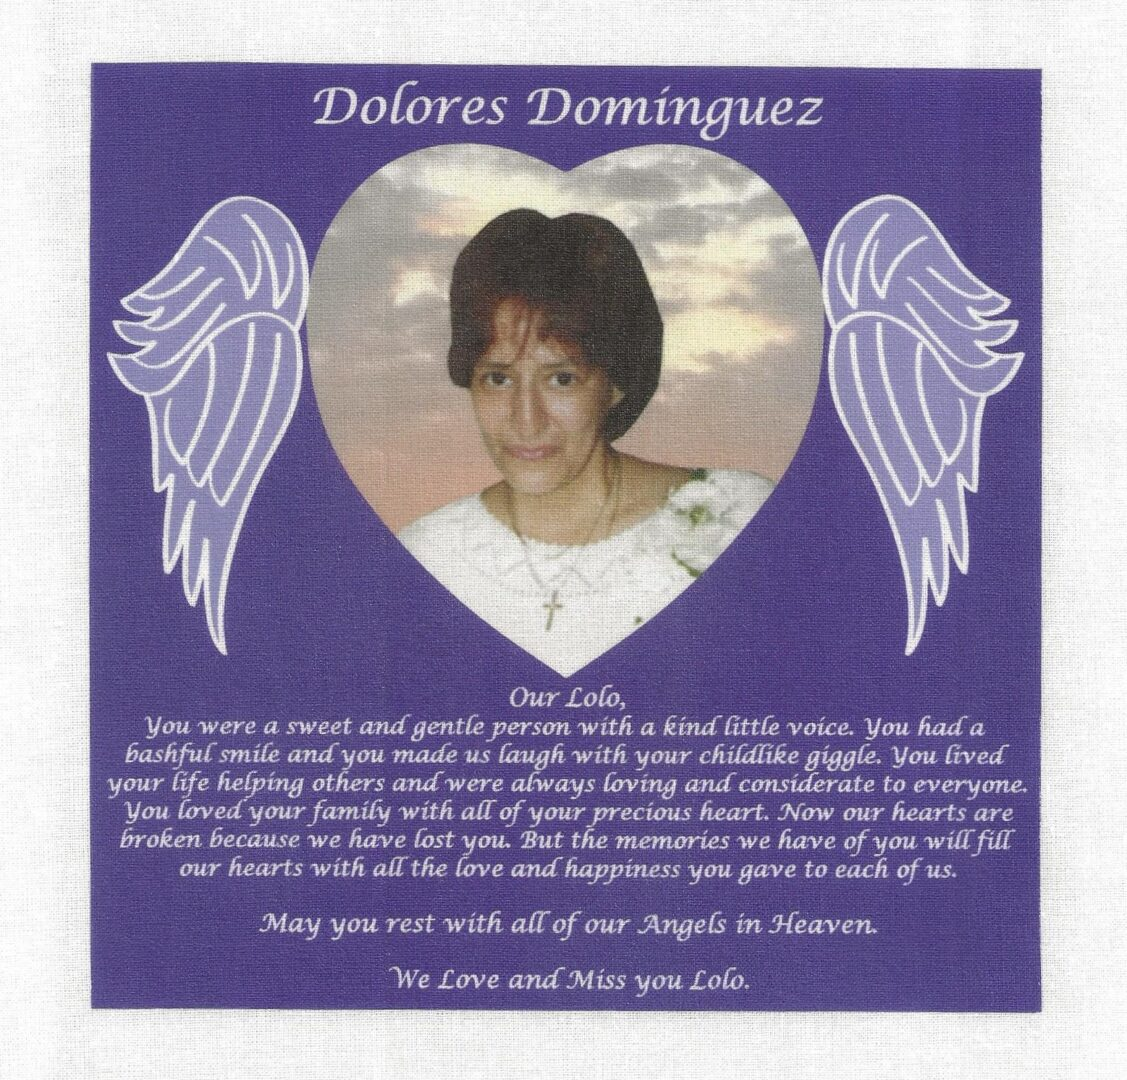 IN MEMORY OF DOLORES